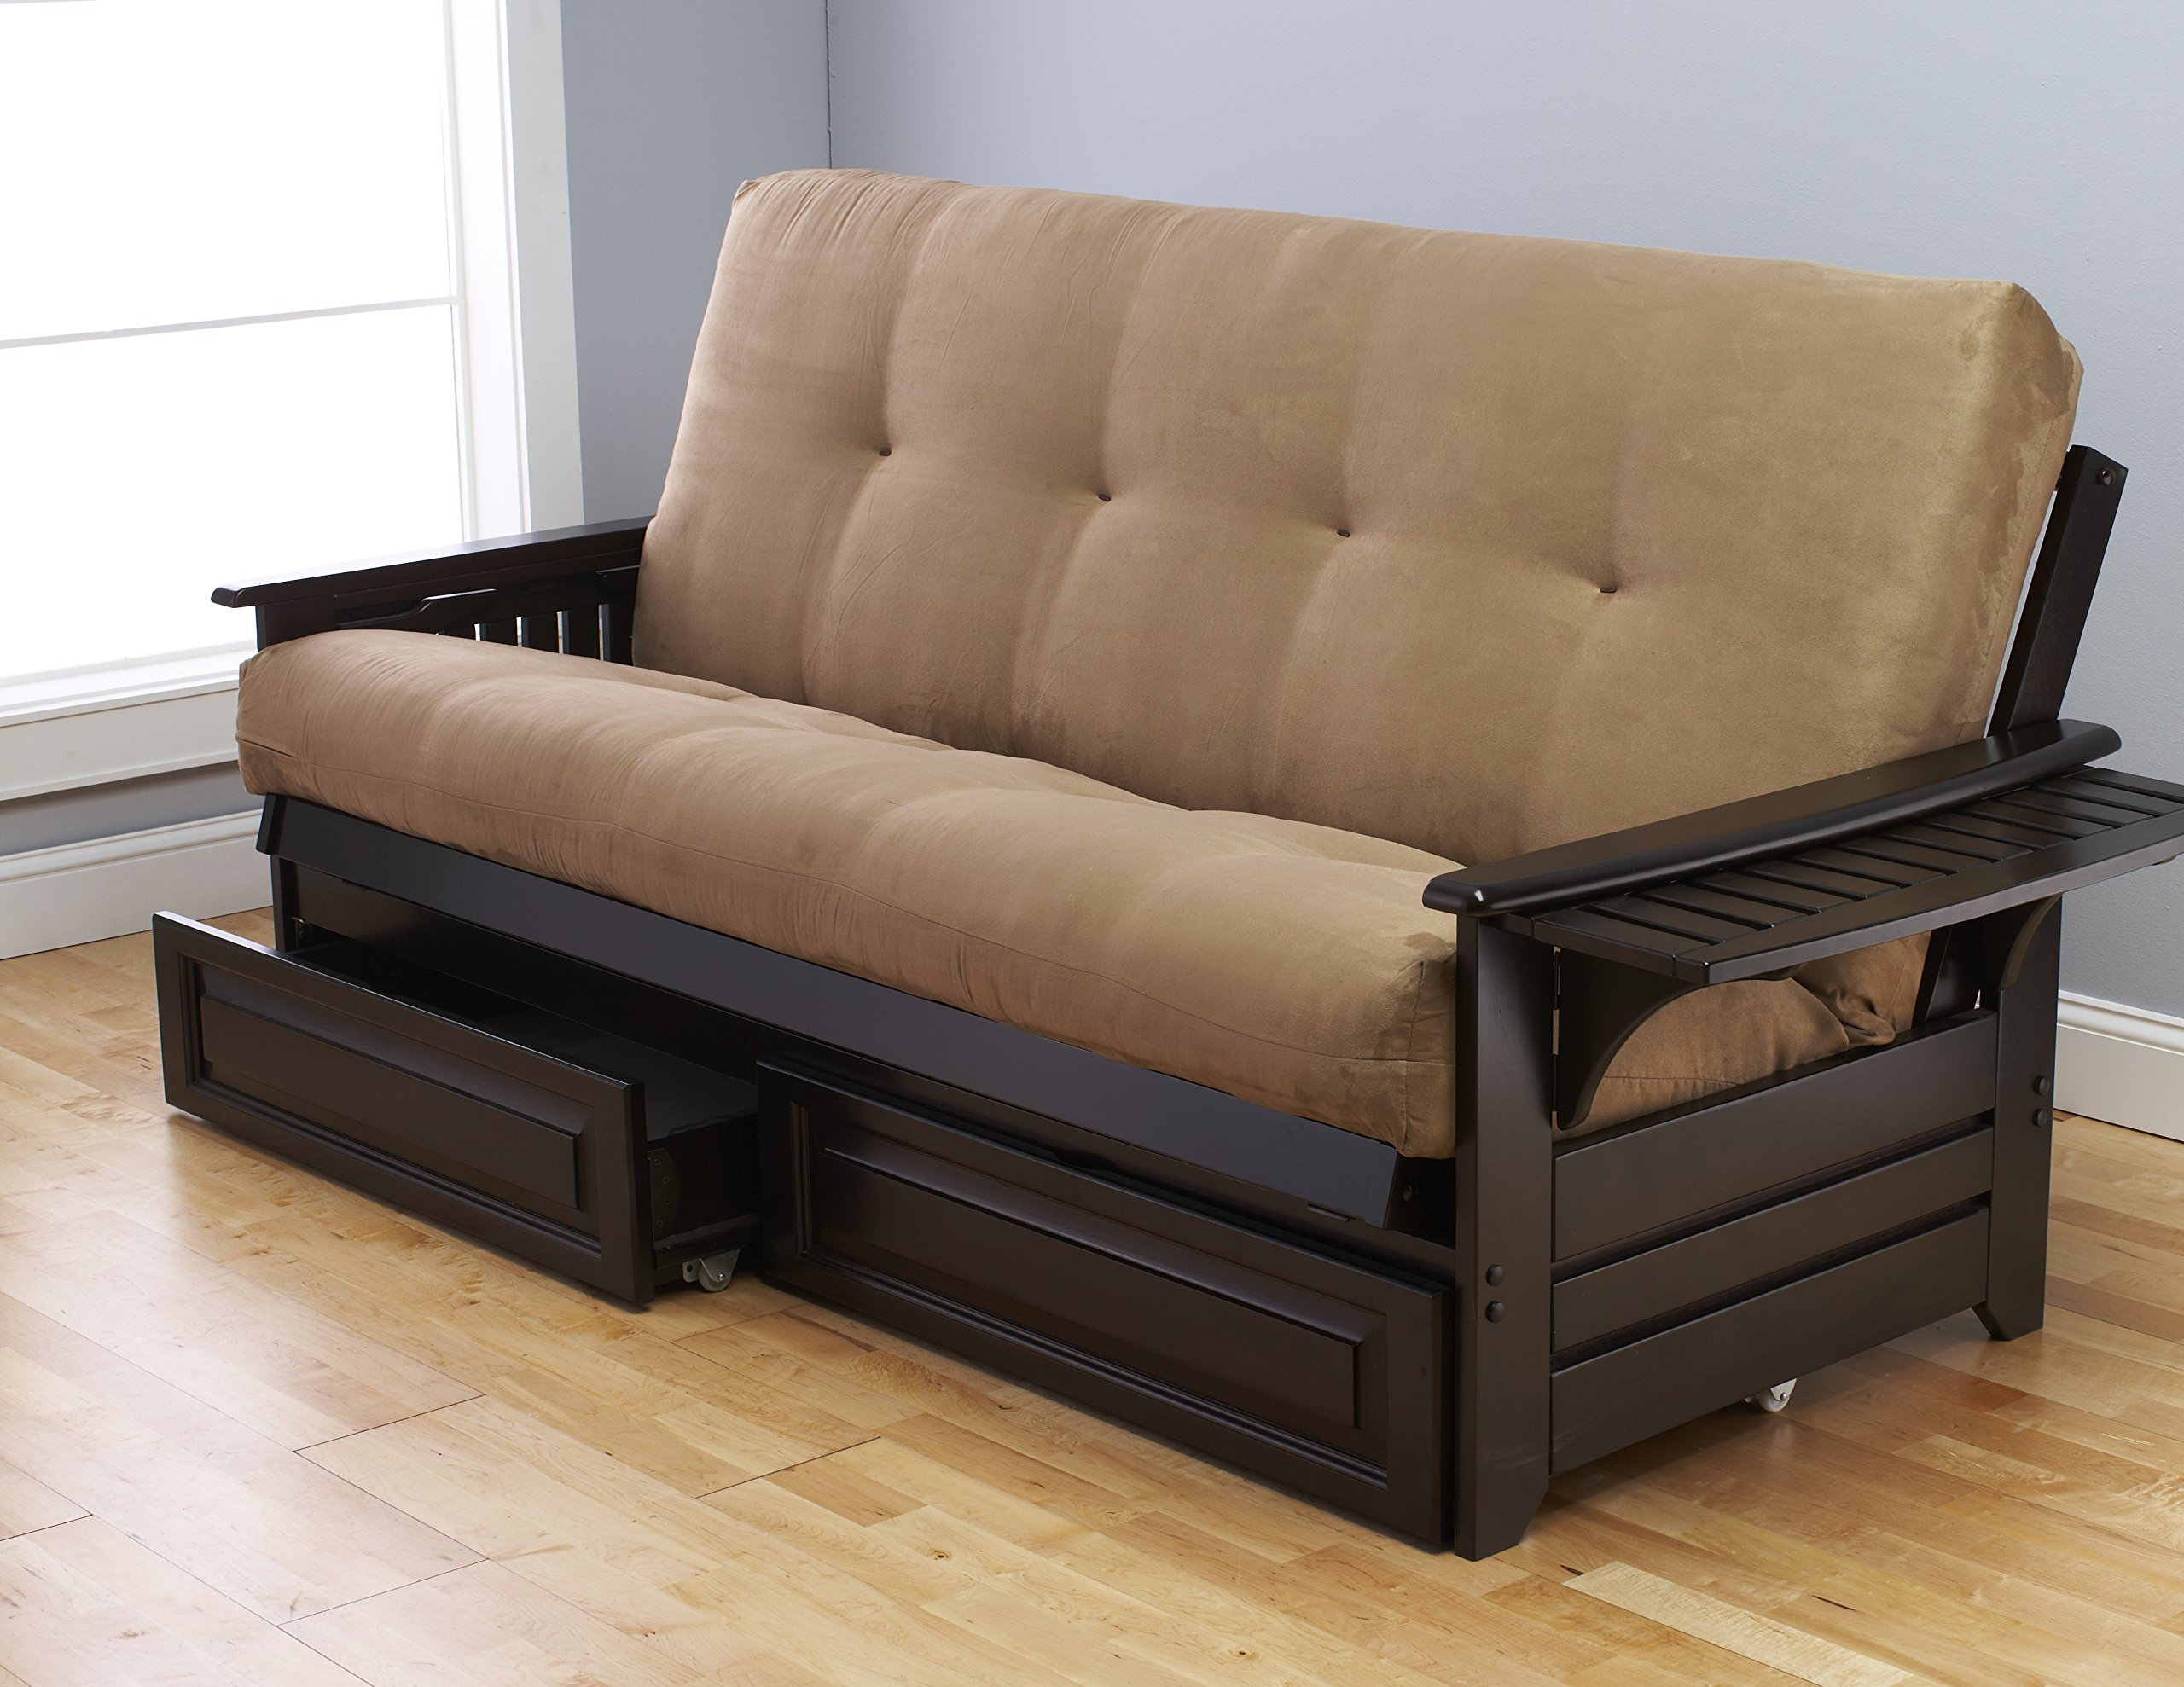 Best Rated in Futon Sets & Helpful Customer Reviews Amazon